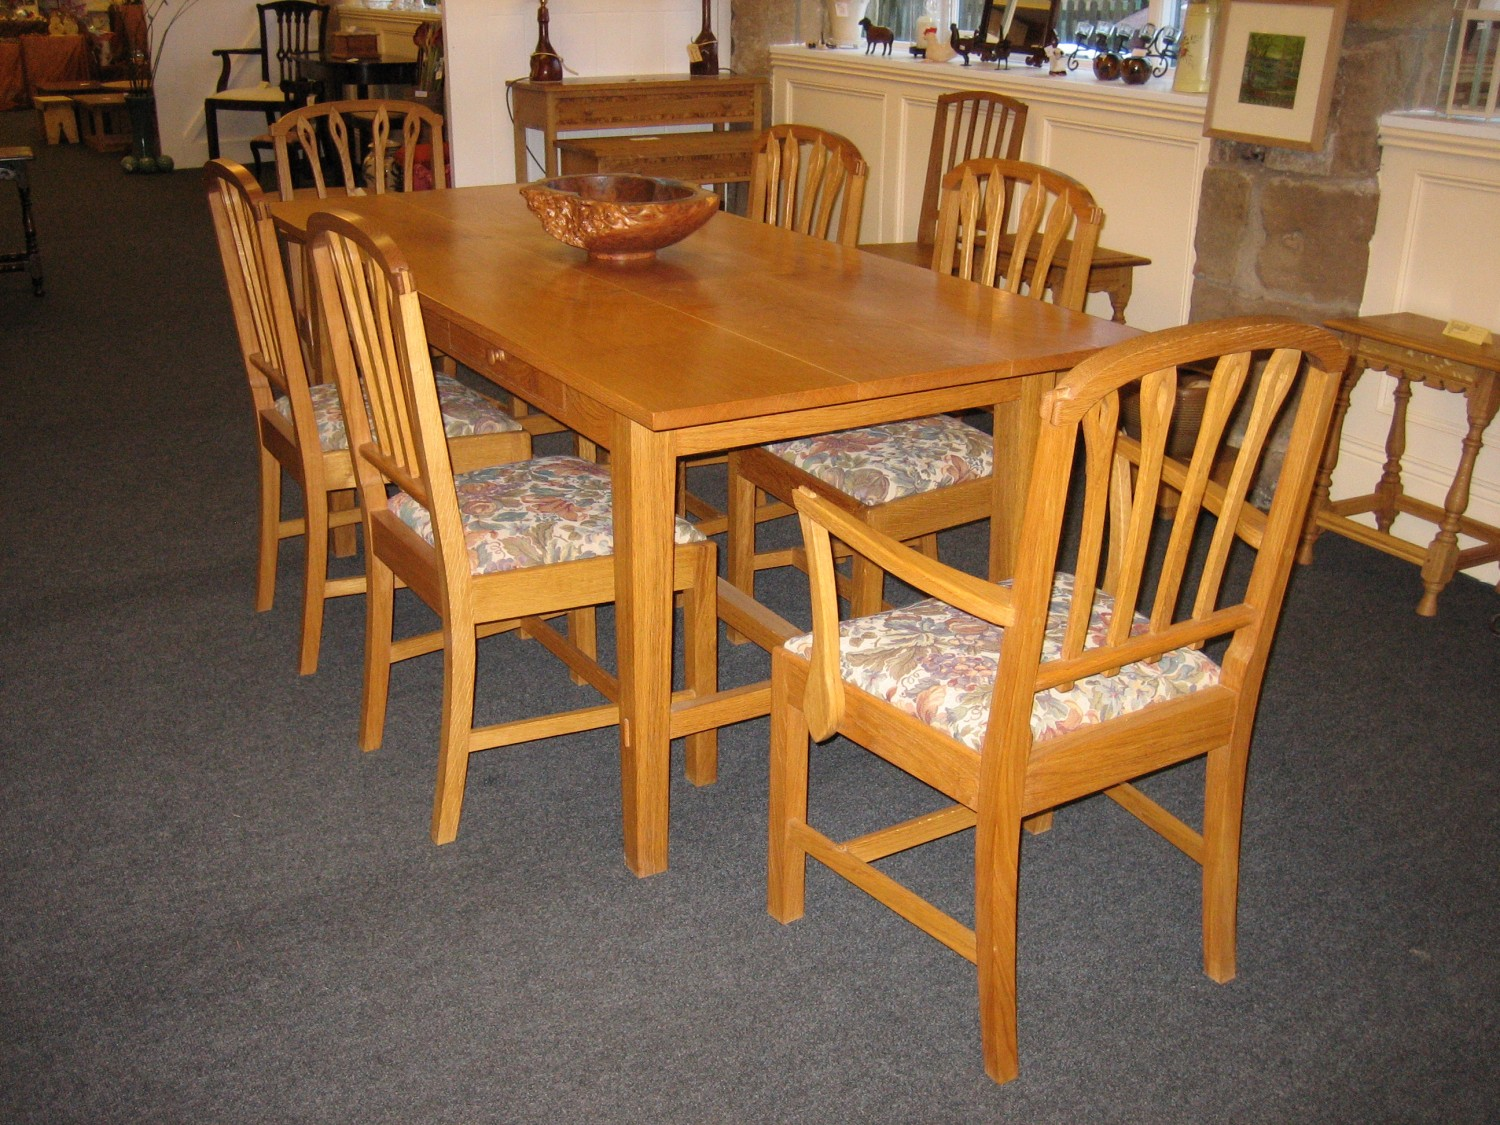 Table-Corn-Backed-Chairs-Table